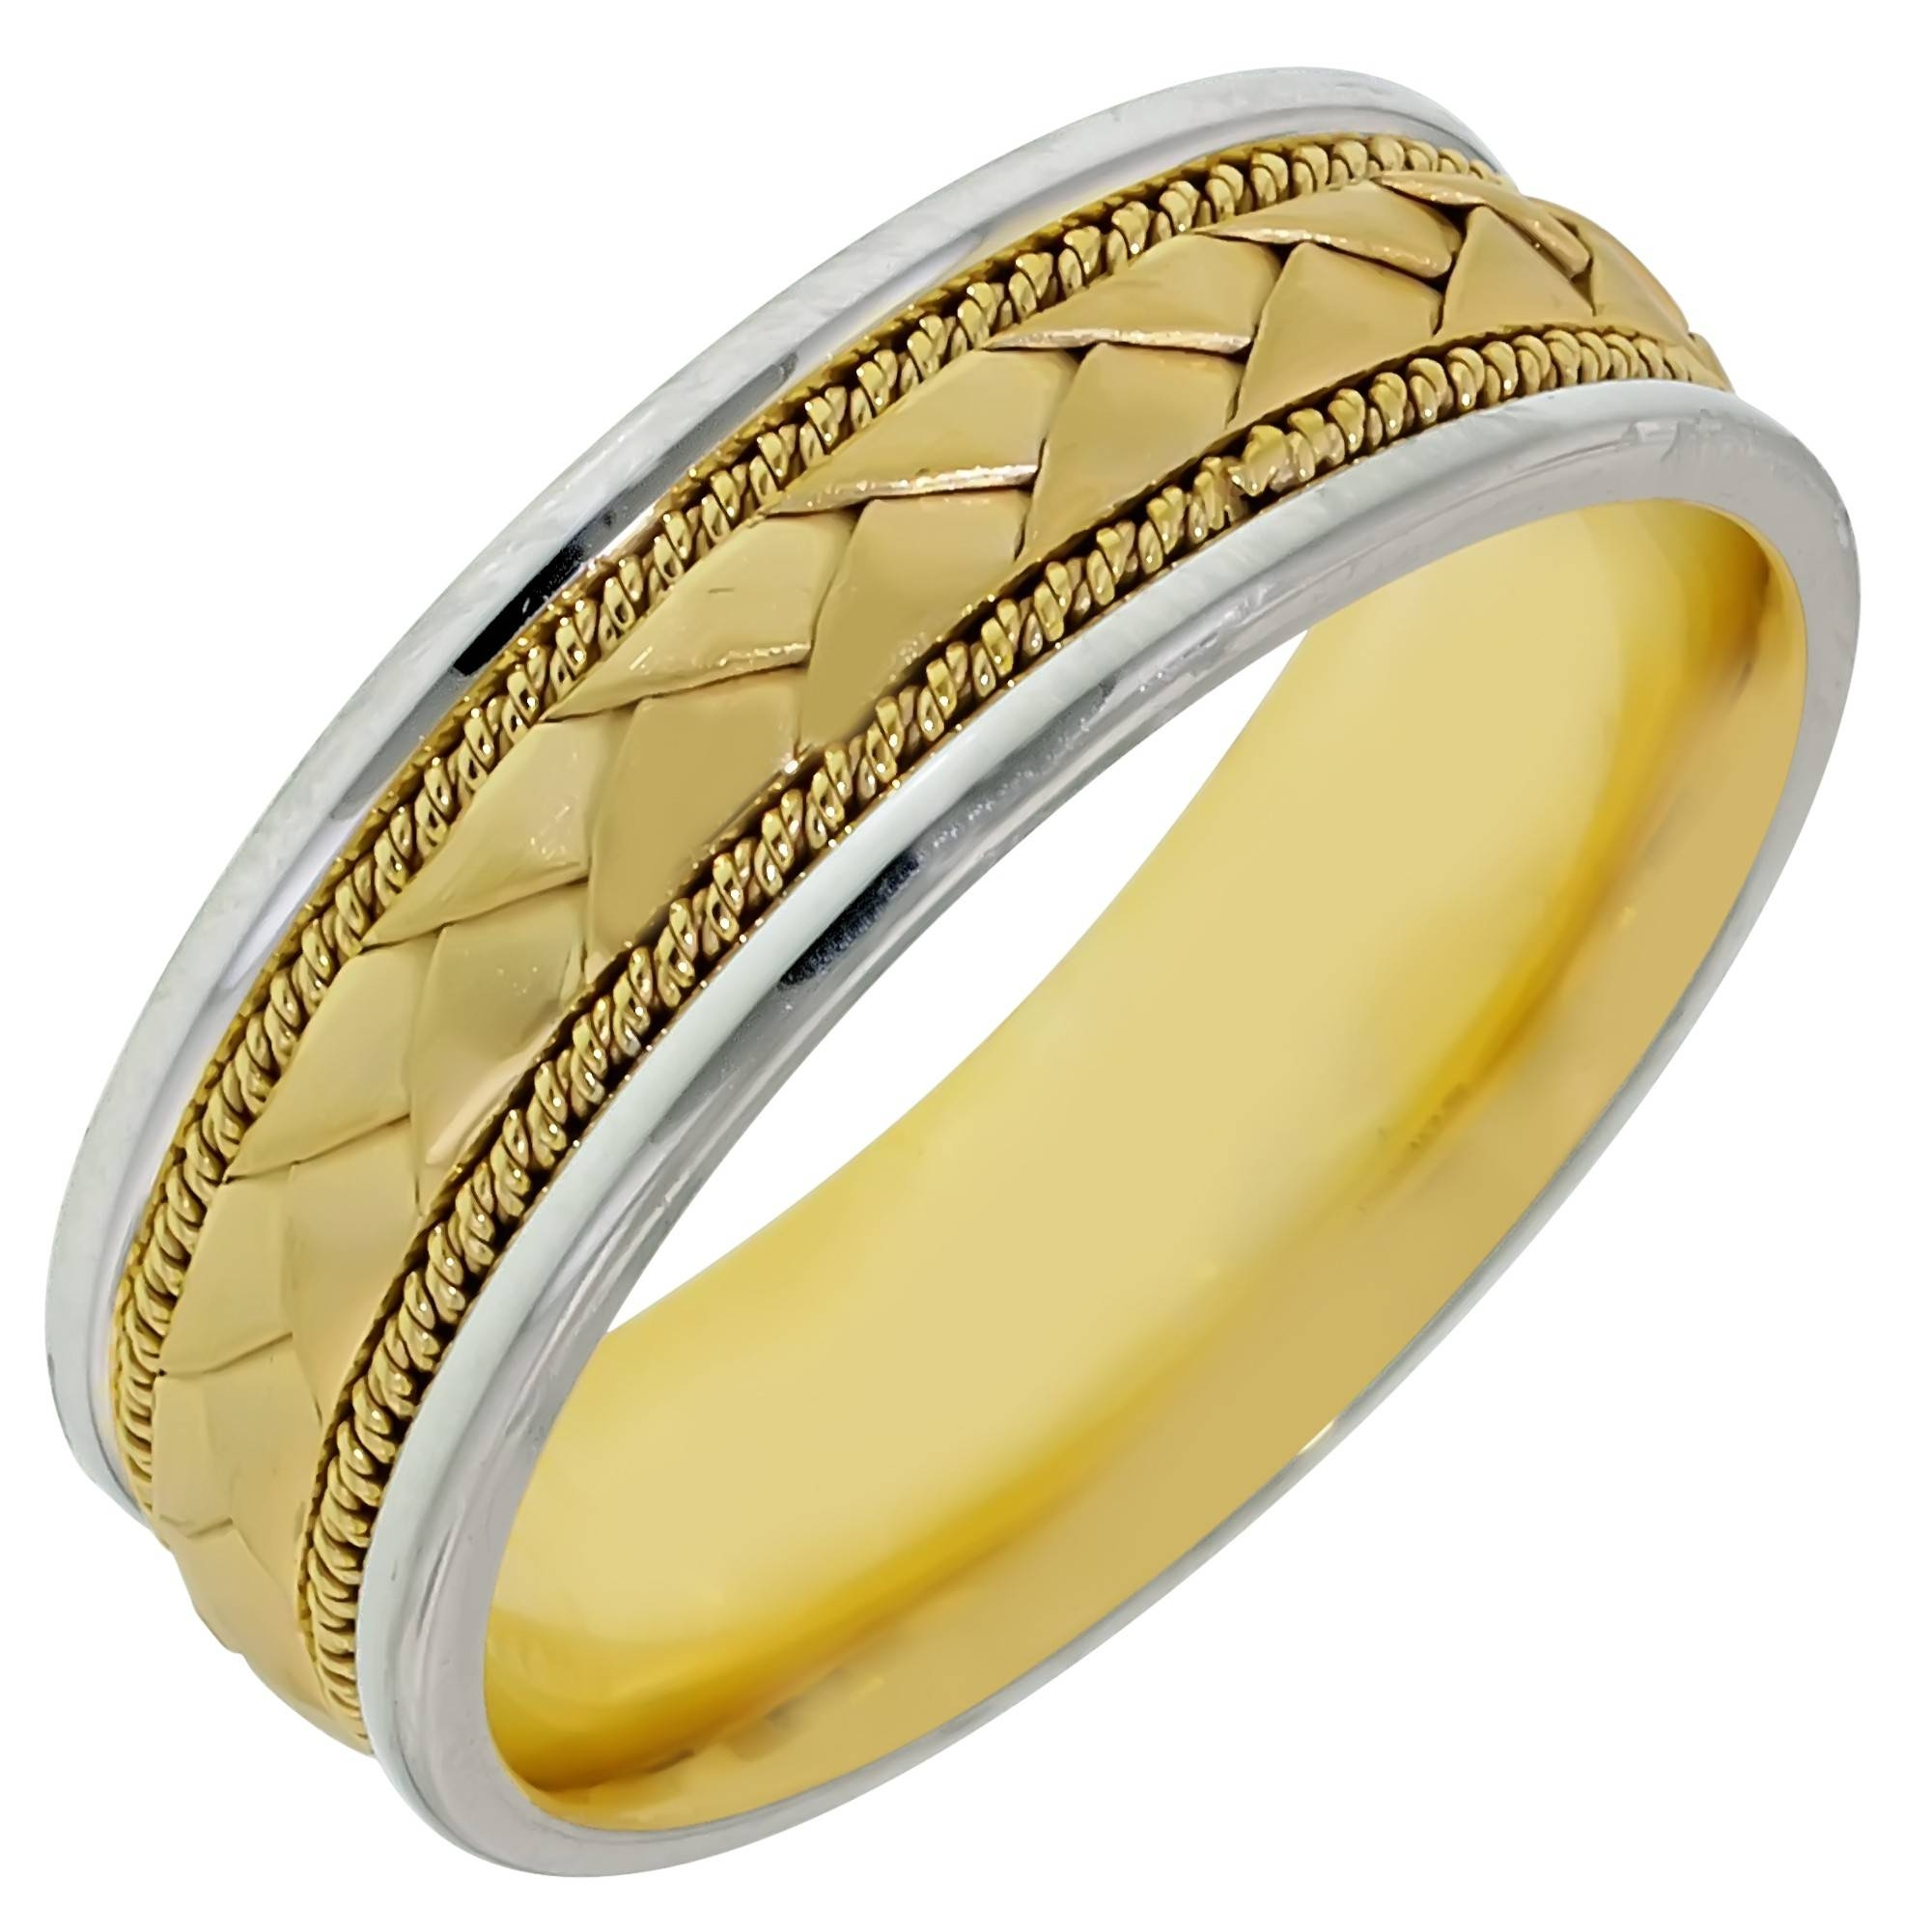 Dora Mens Braided Wedding Band In 14Kt White And Yellow Gold (7Mm) Intended For White And Yellow Gold Wedding Bands (View 5 of 15)